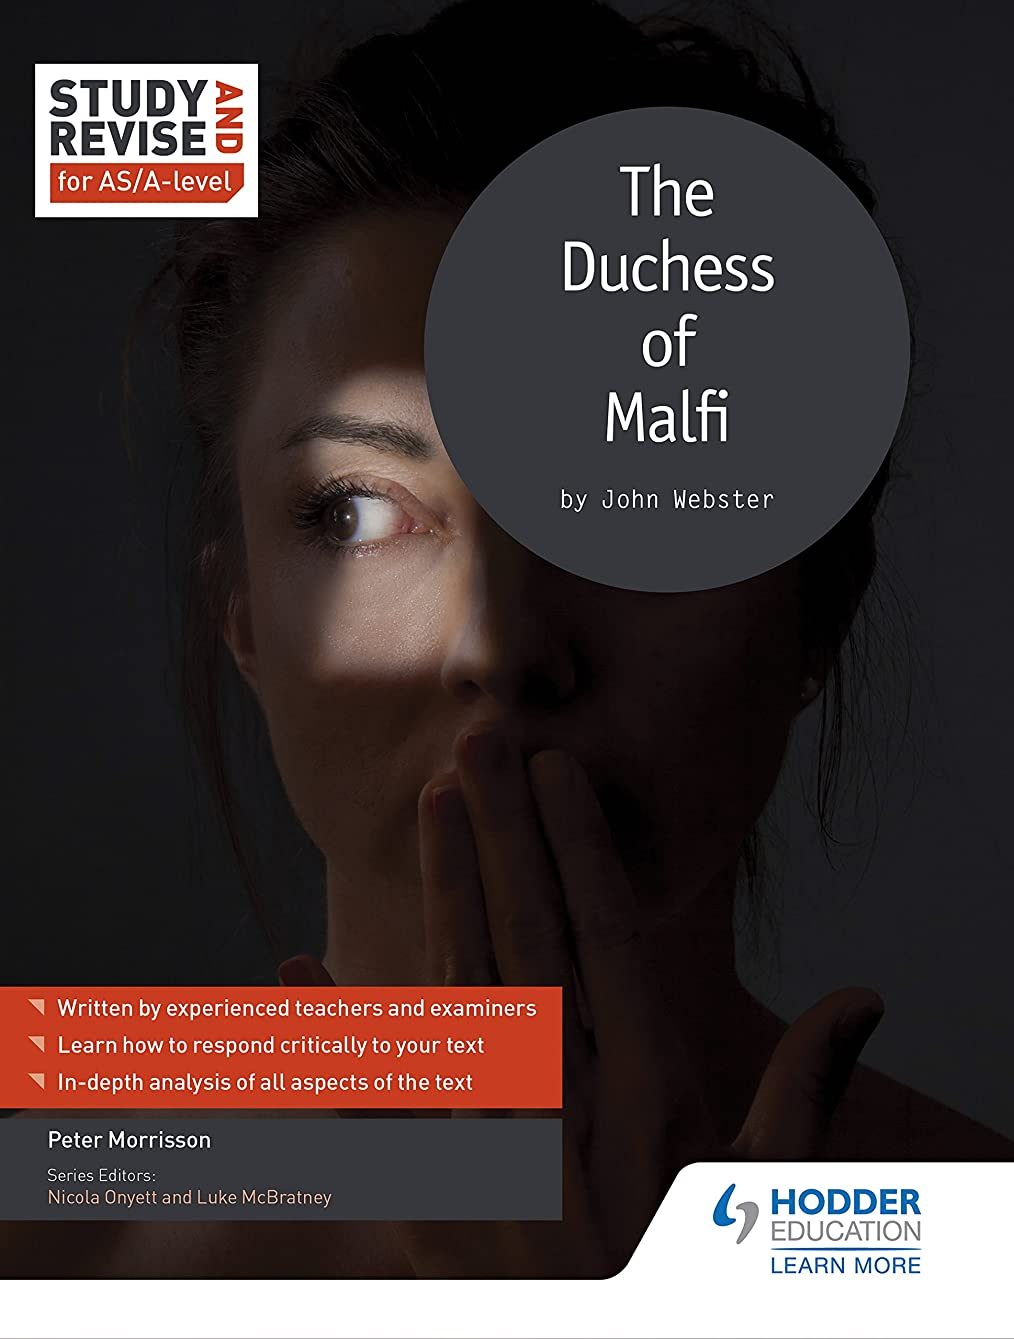 少数割り当てる放つStudy and Revise for AS/A-level: The Duchess of Malfi (Study & Revise) (English Edition)